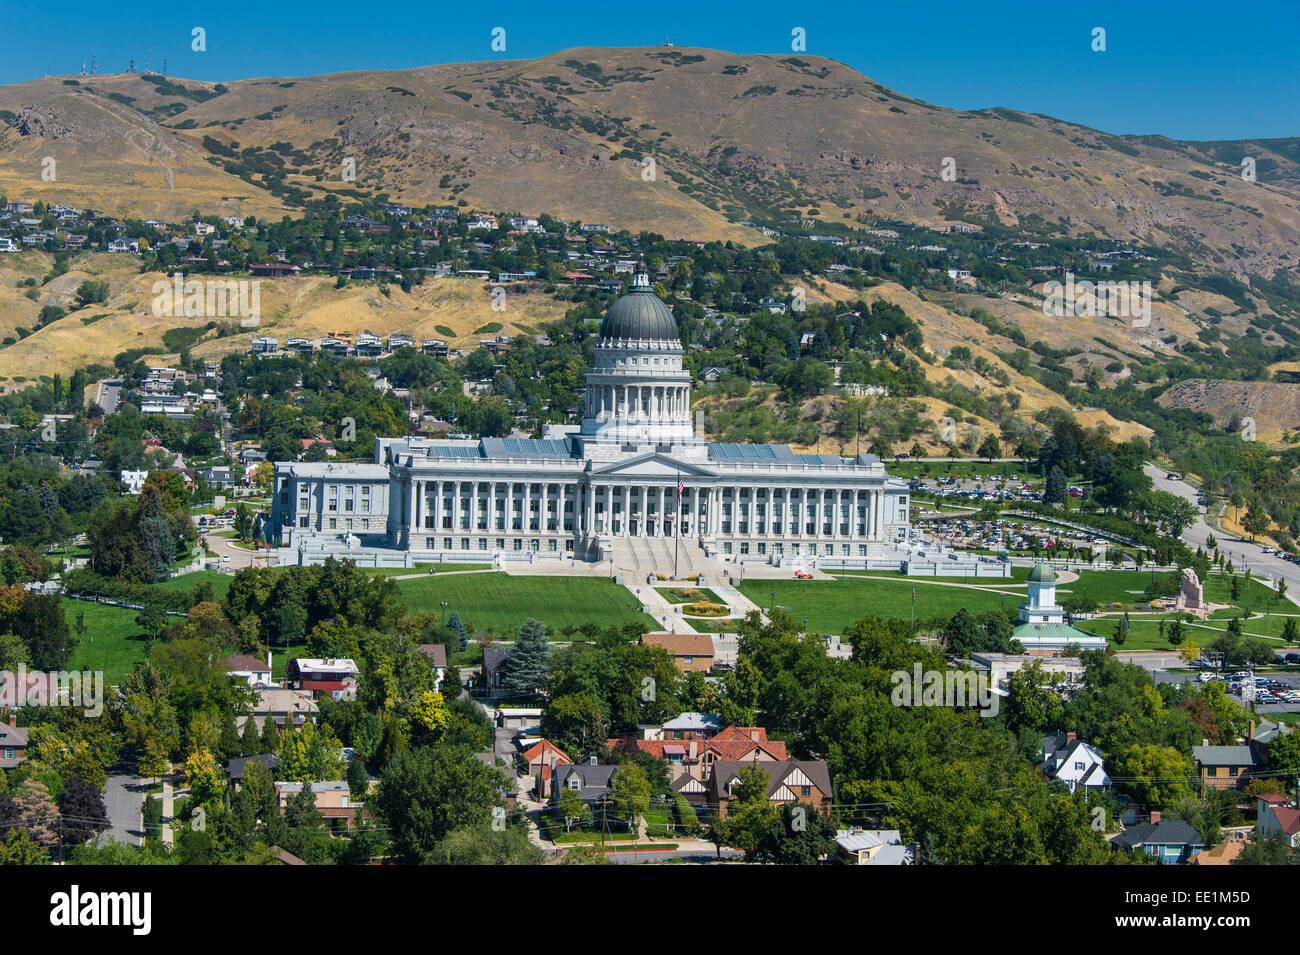 View over the Utah State Capitol, Salt Lake City, Utah, United States of America, North America - Stock Image